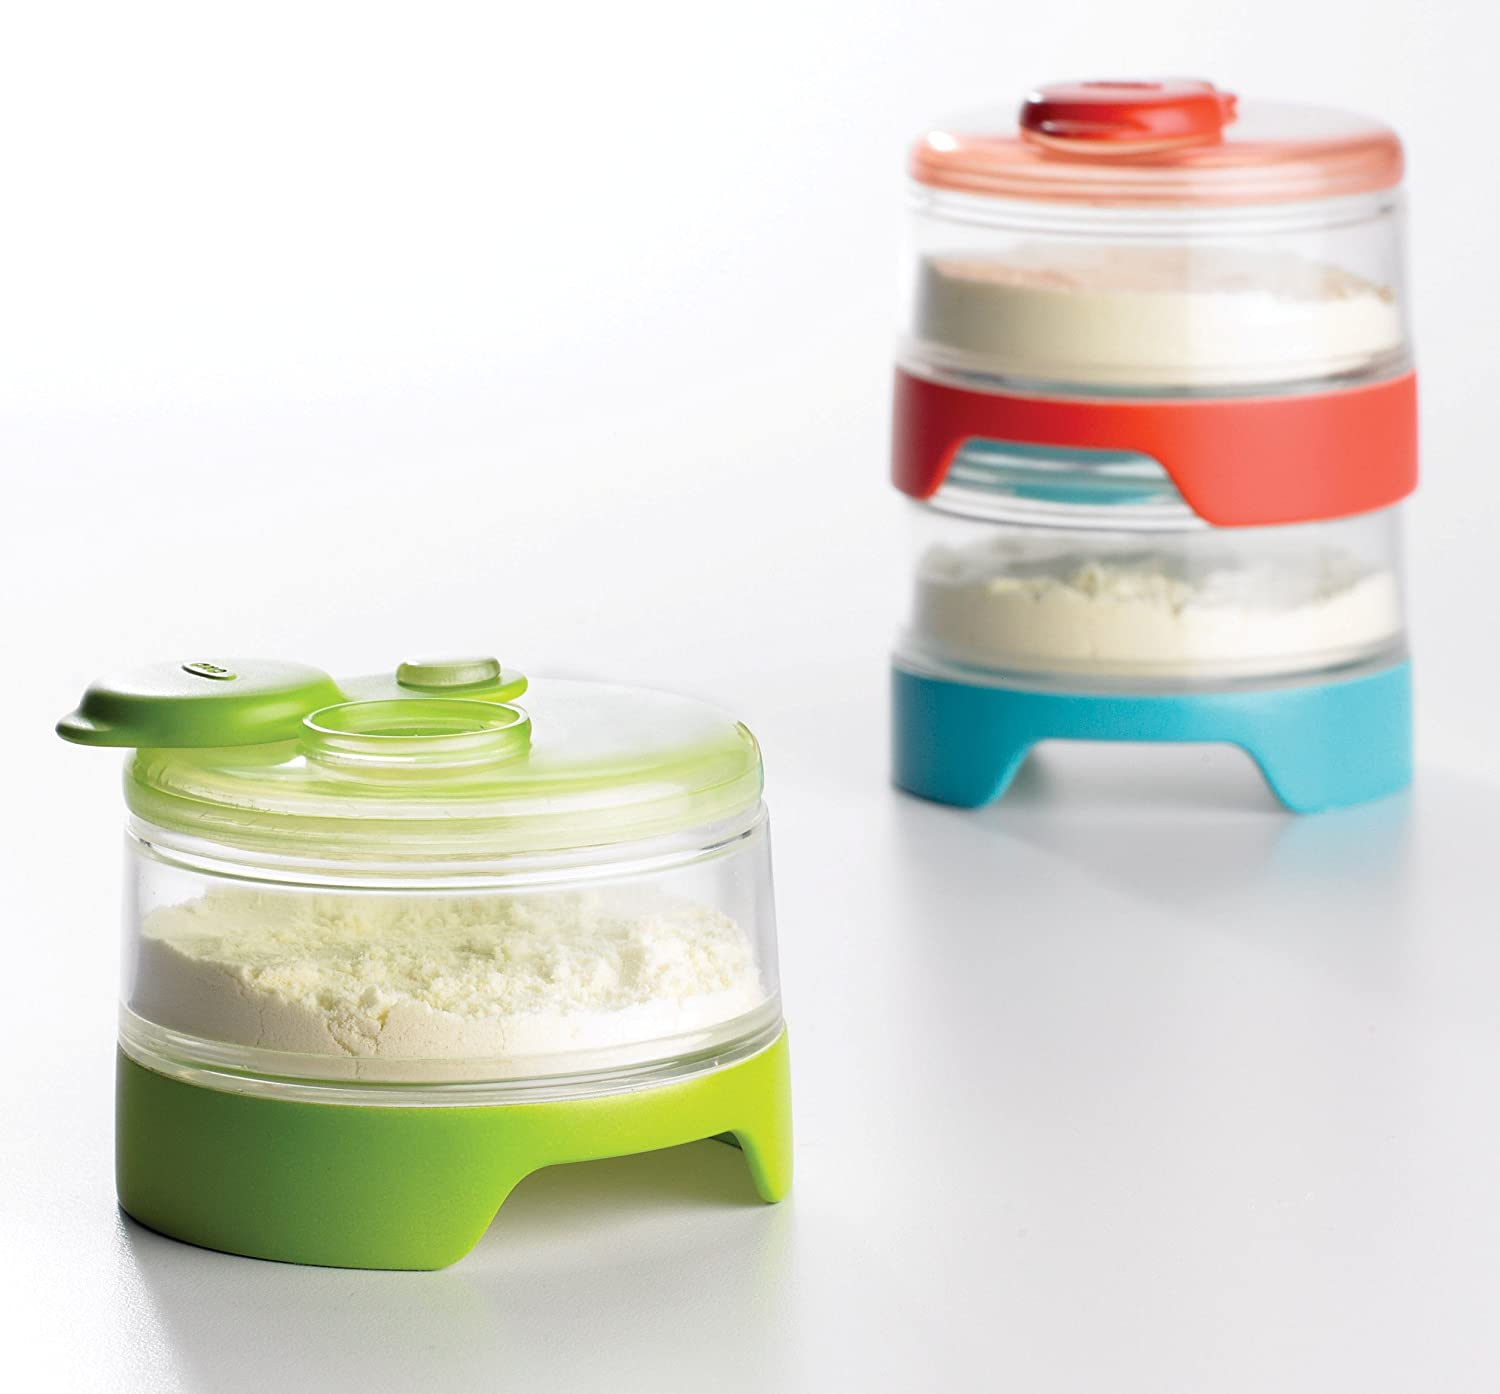 Stackable formula containers